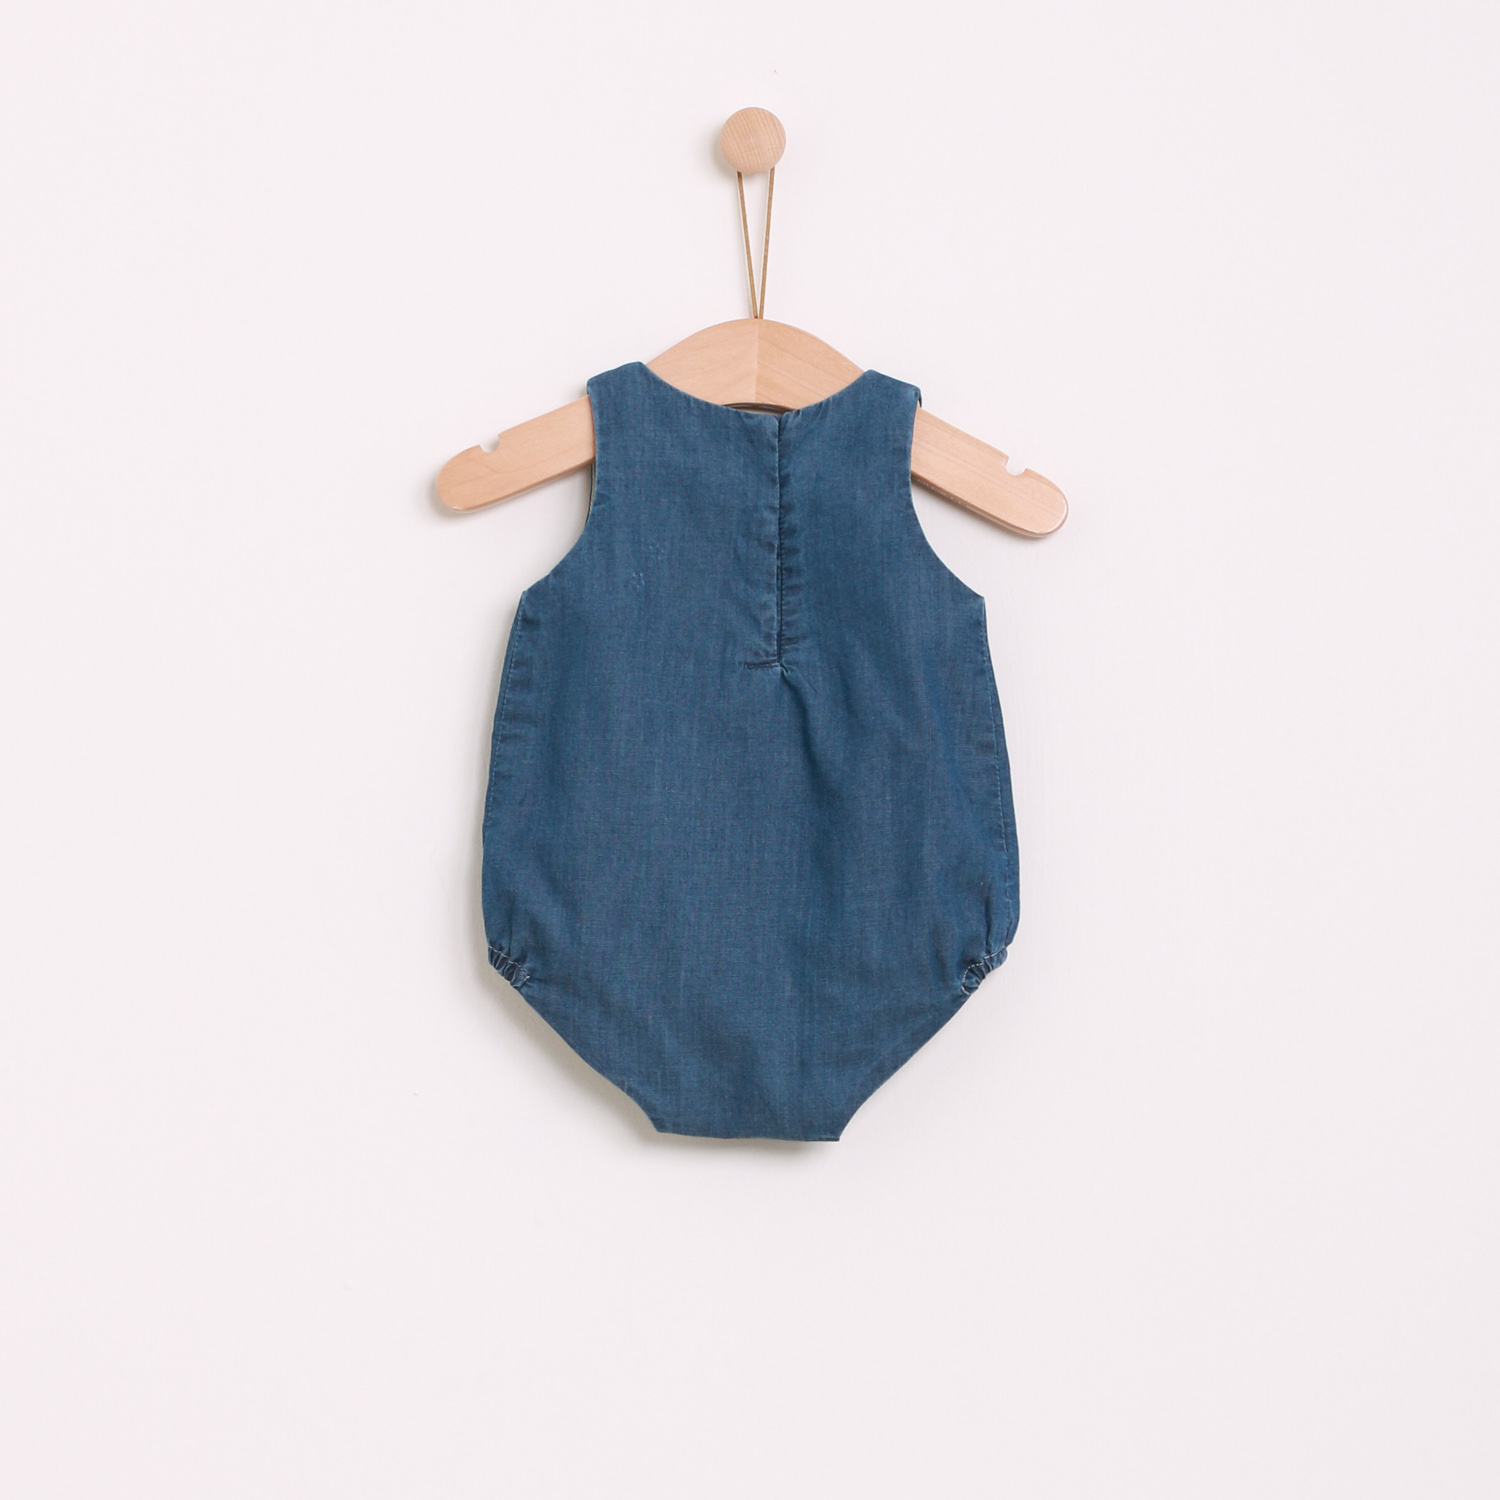 Fofo chambray